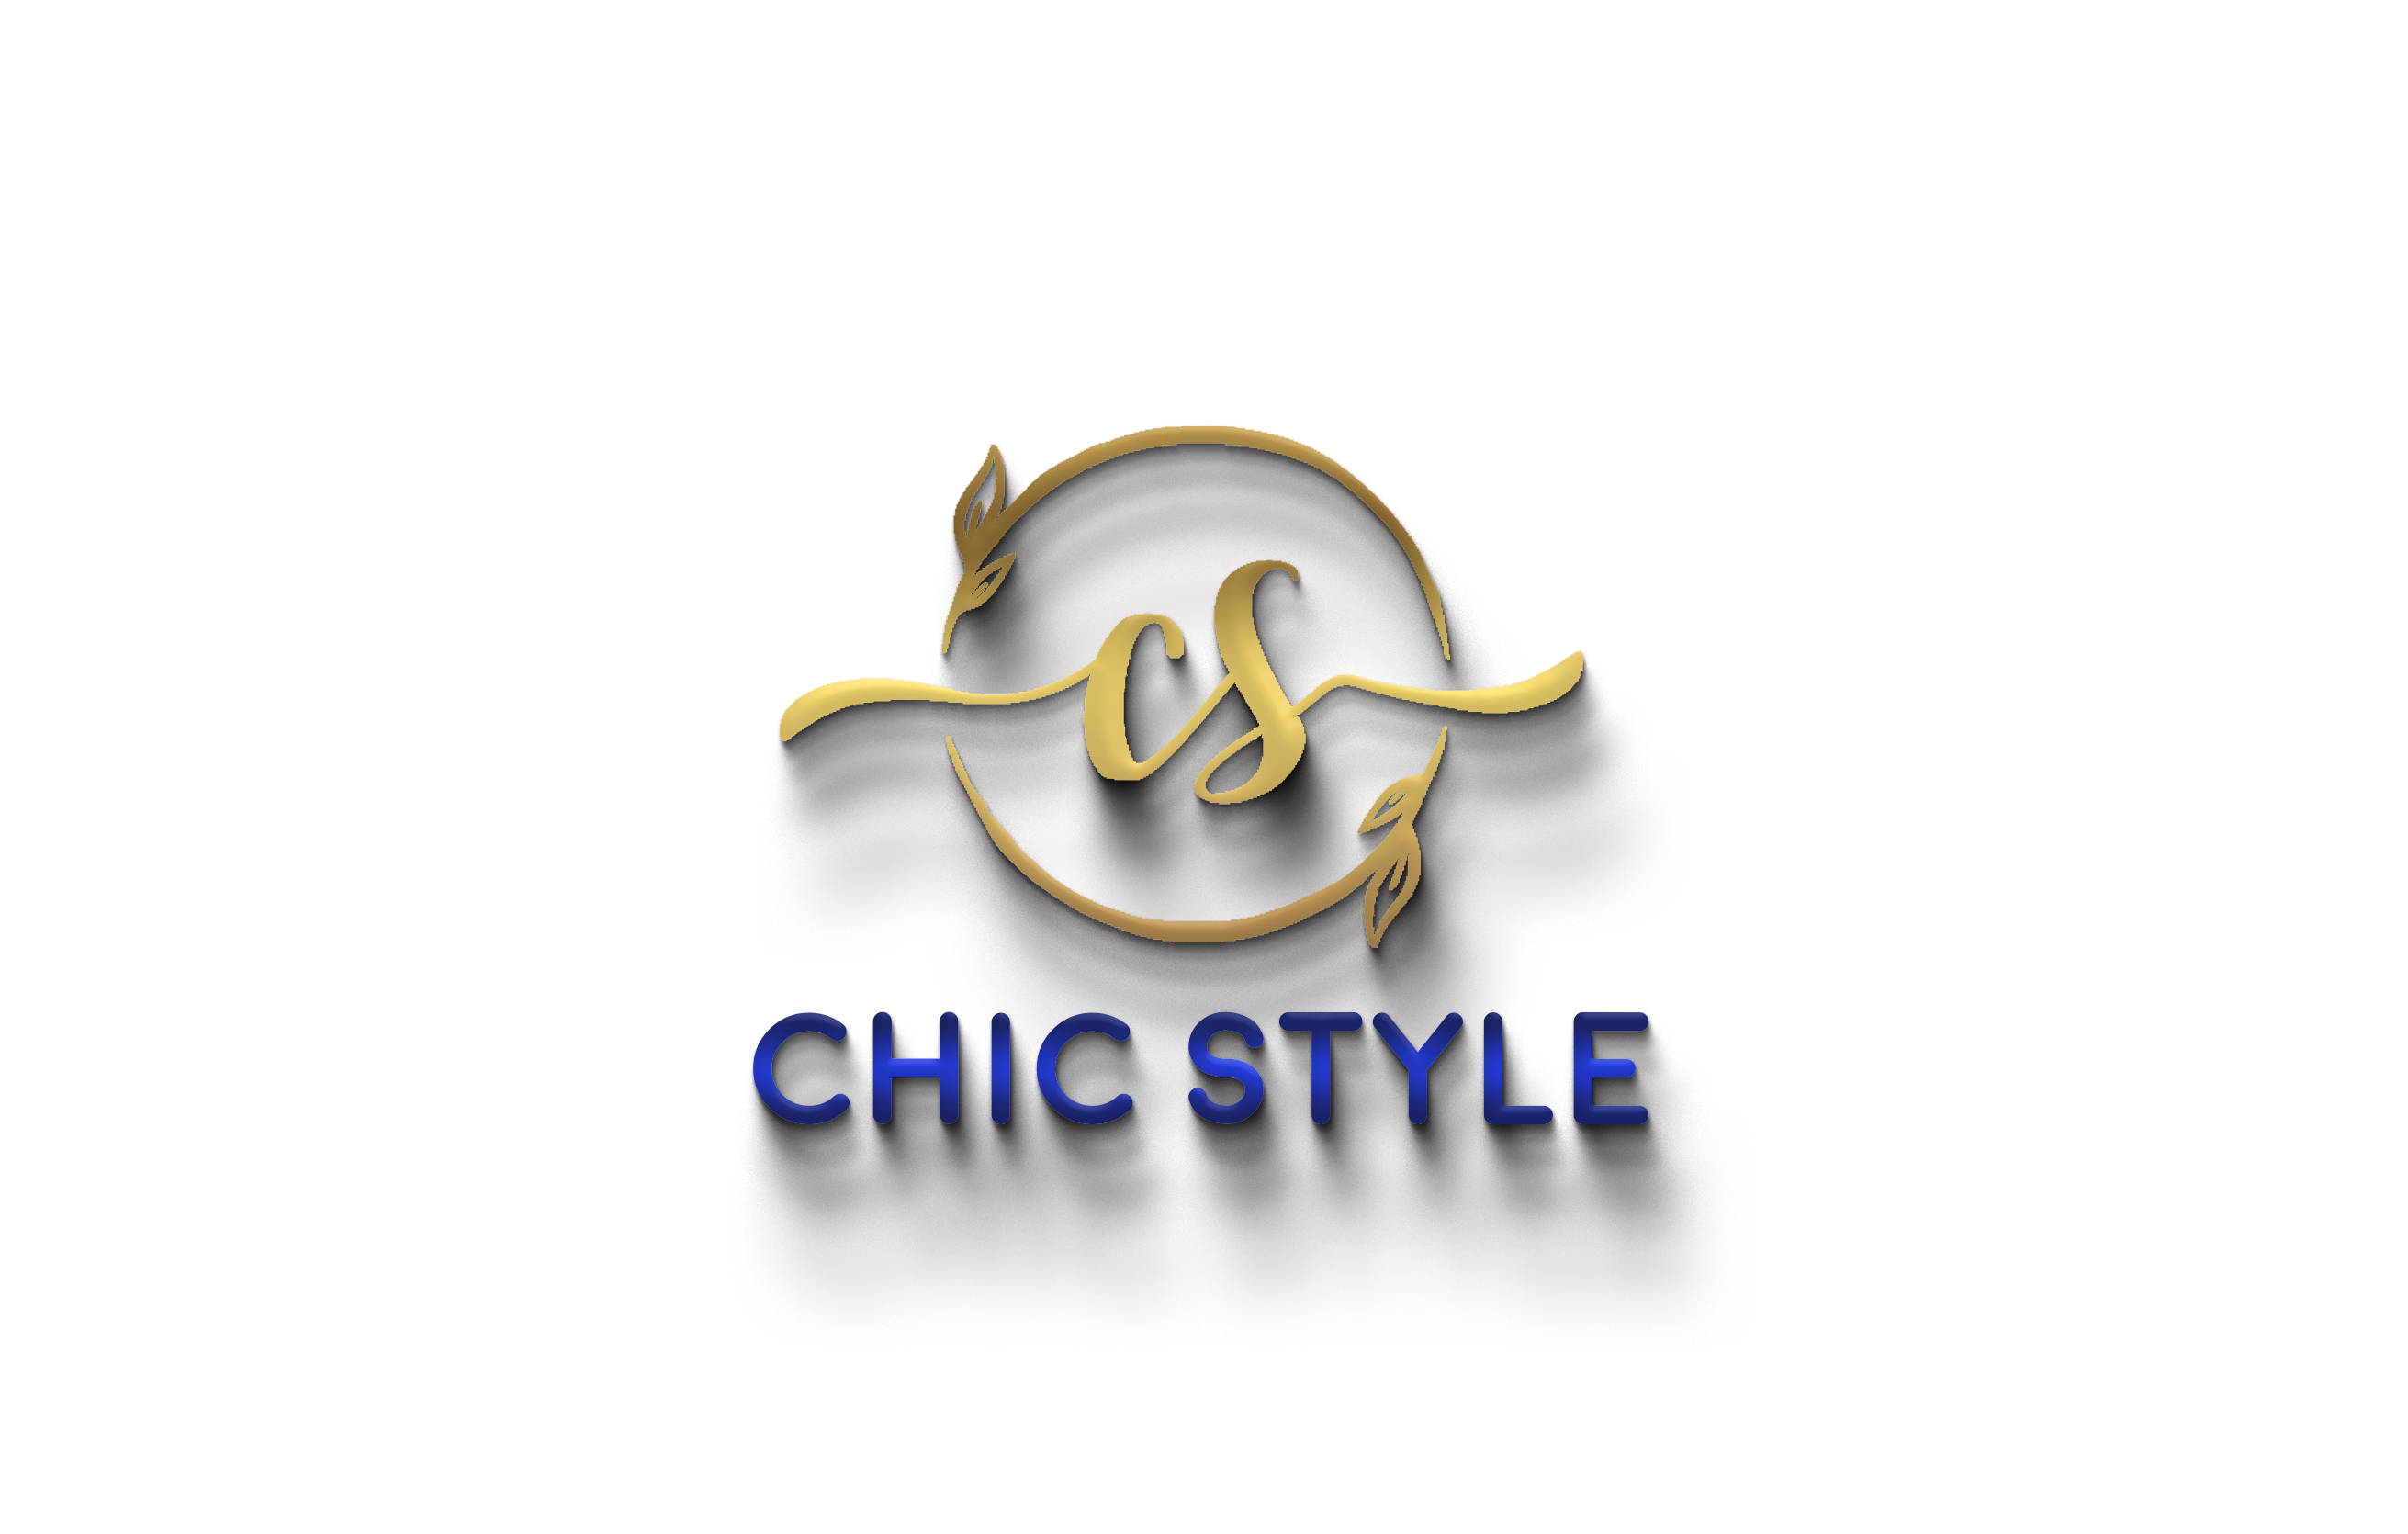 NAOSSOFT Launches New Website For Chic Style LLC at www.chicstylellc.com